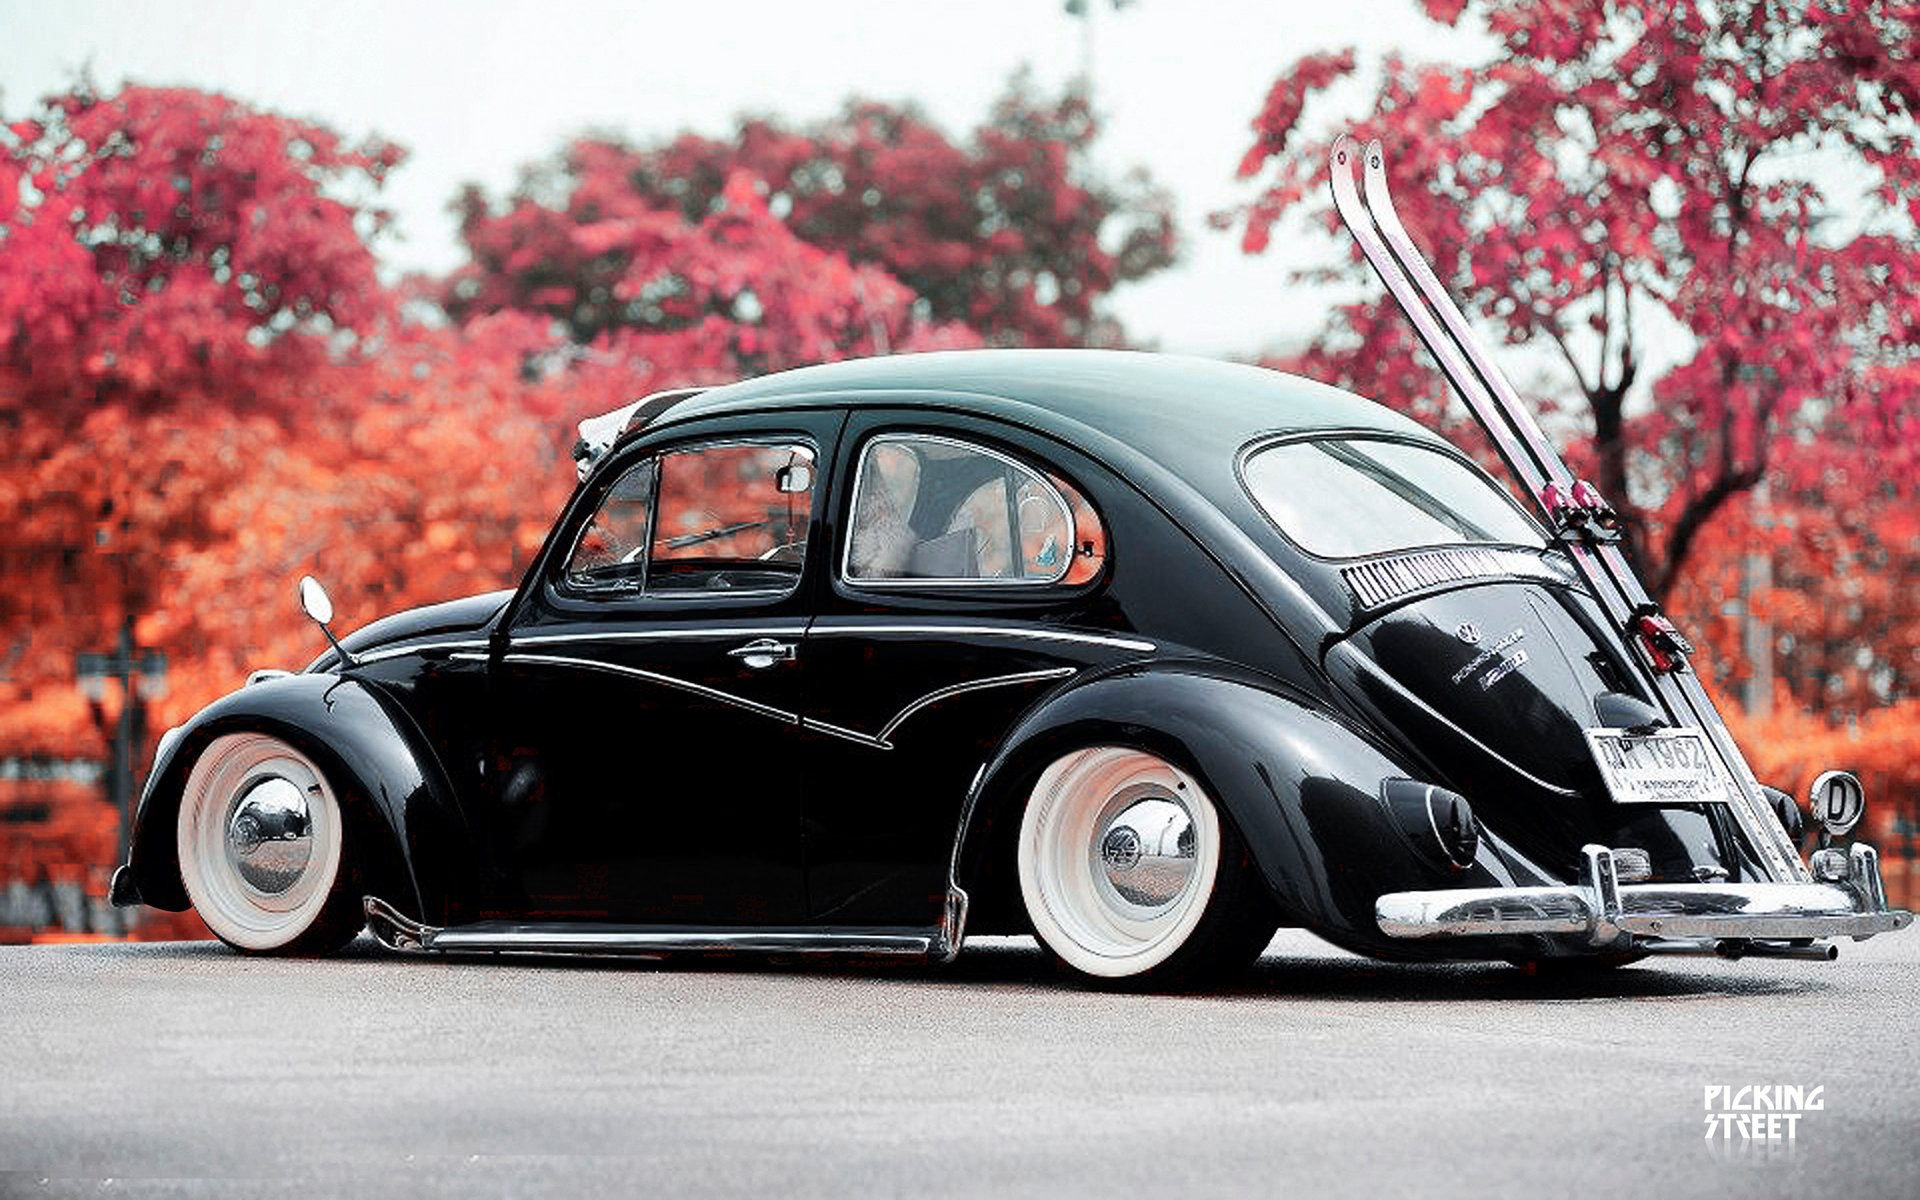 Cars 1 Wallpaper Lowrider Volkswagon Beetle Socal Wheel Gd Wallpaper